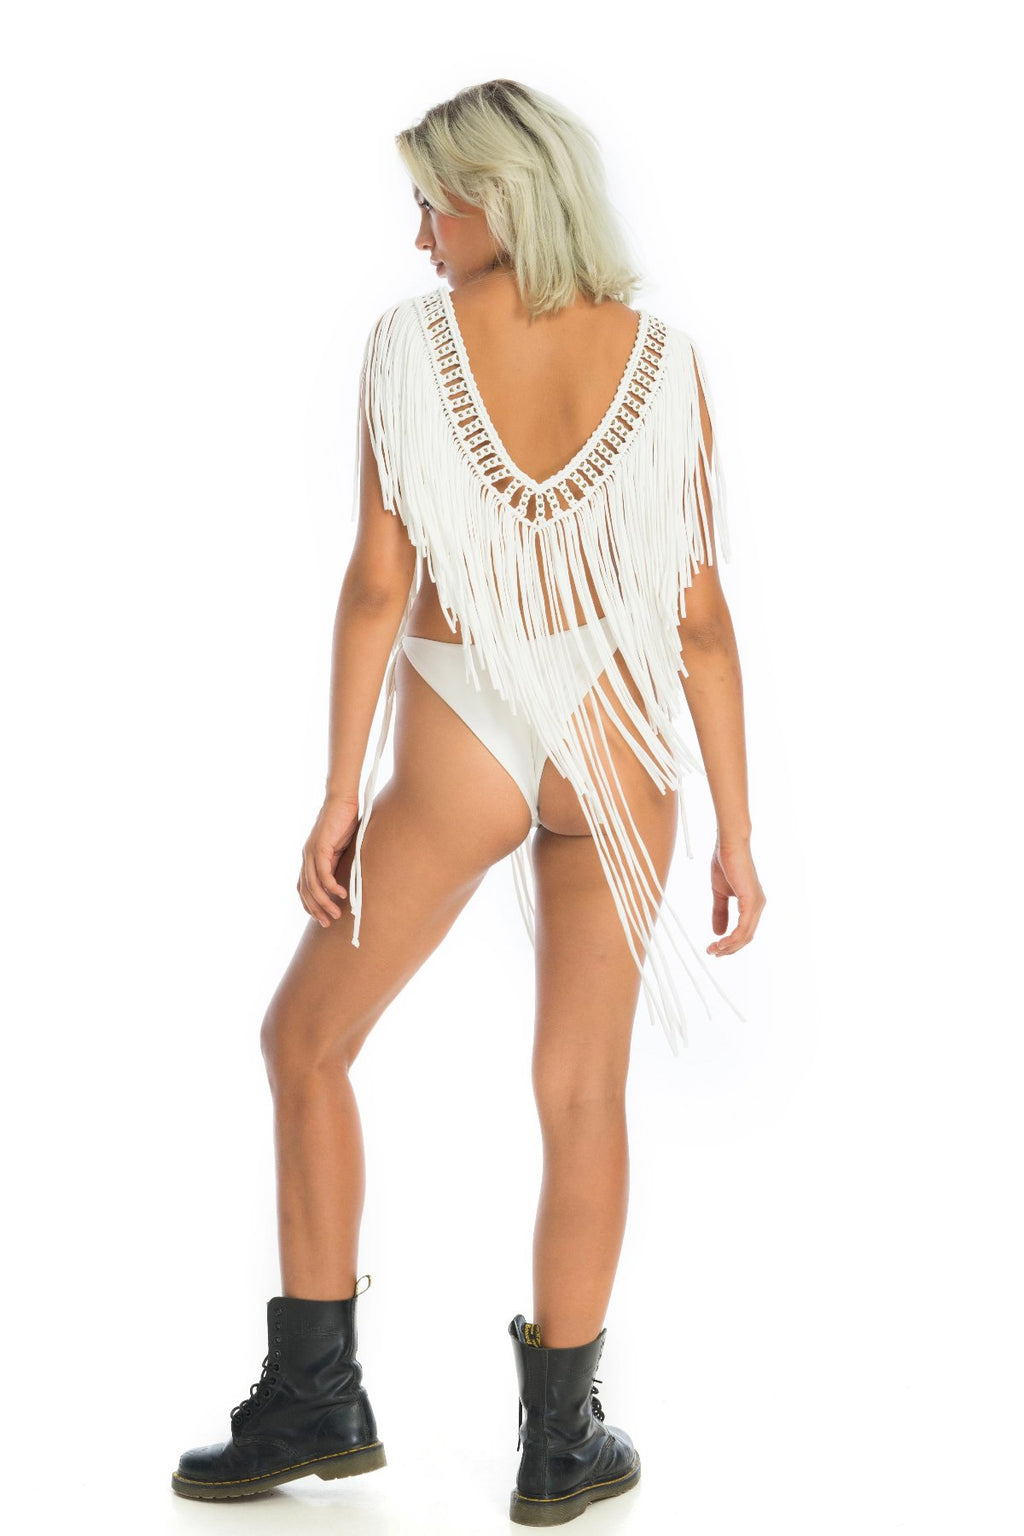 v neck macramé rave top, comfy unique music festival costume | Ladee Taha